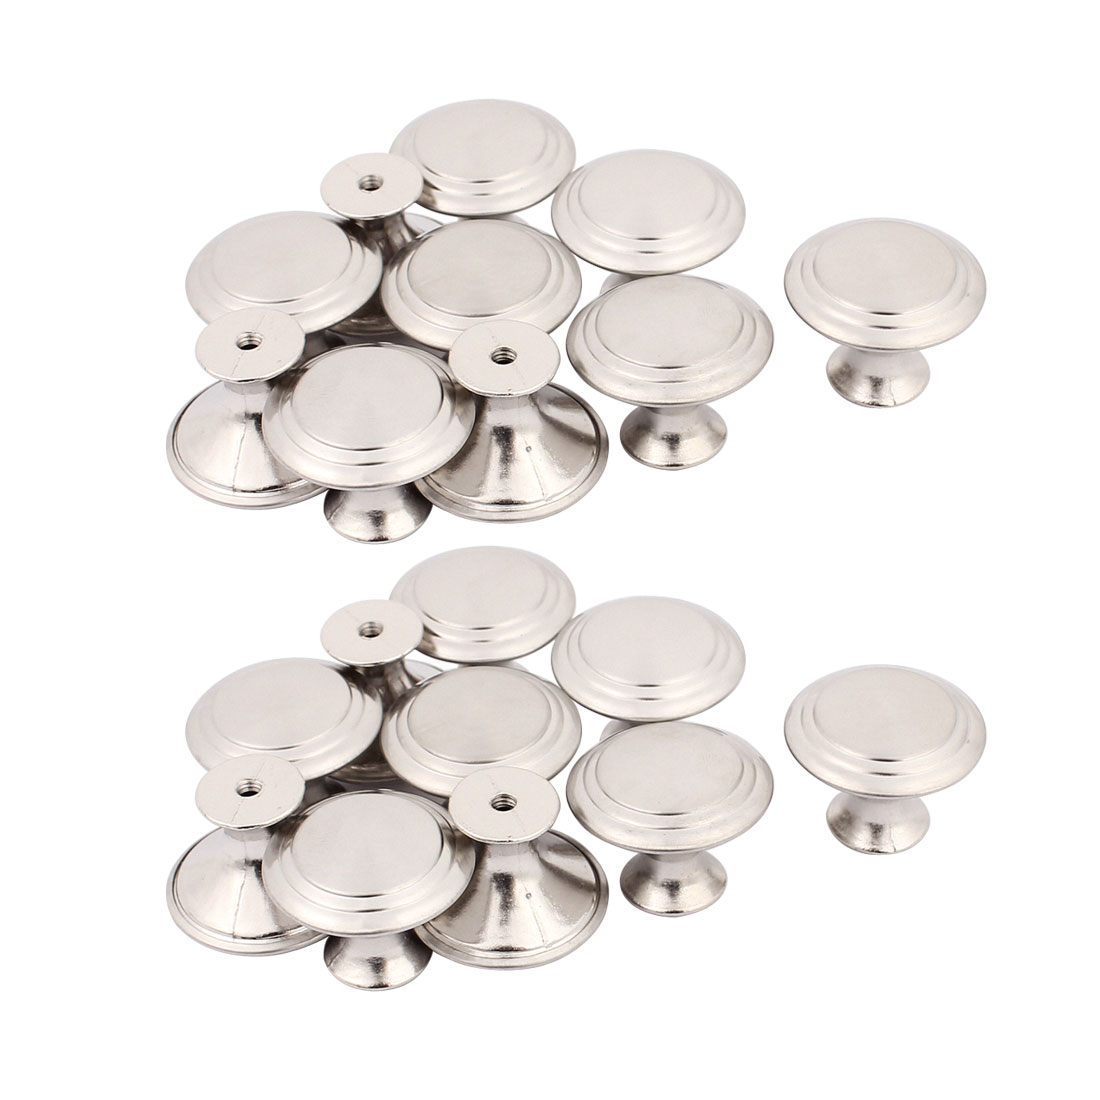 Household Closet Chest Stainless Steel Single Hole Pull Knobs 27.5mmx22mm 20pcs